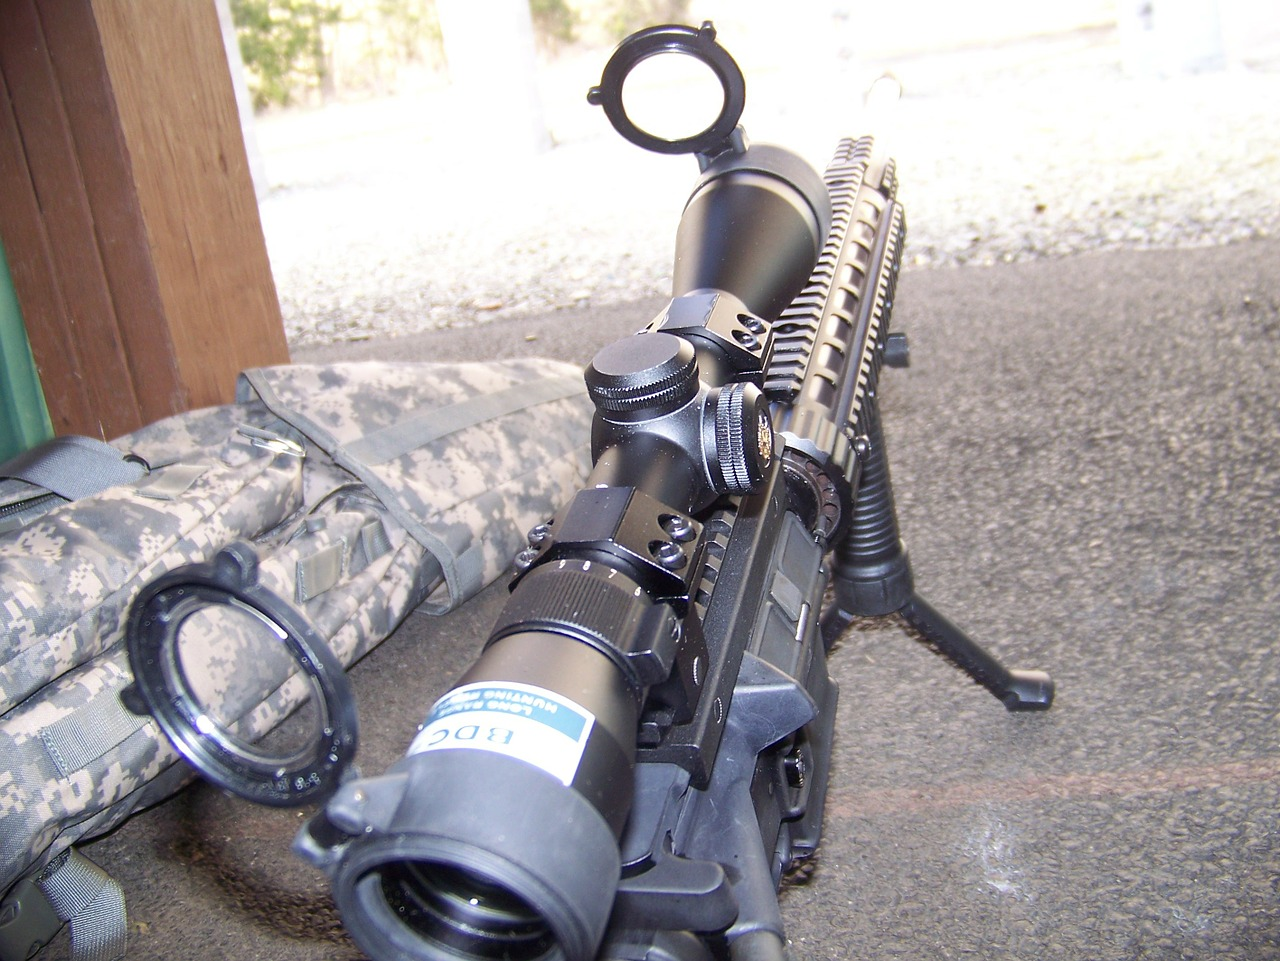 sniper weapon rifle free photo